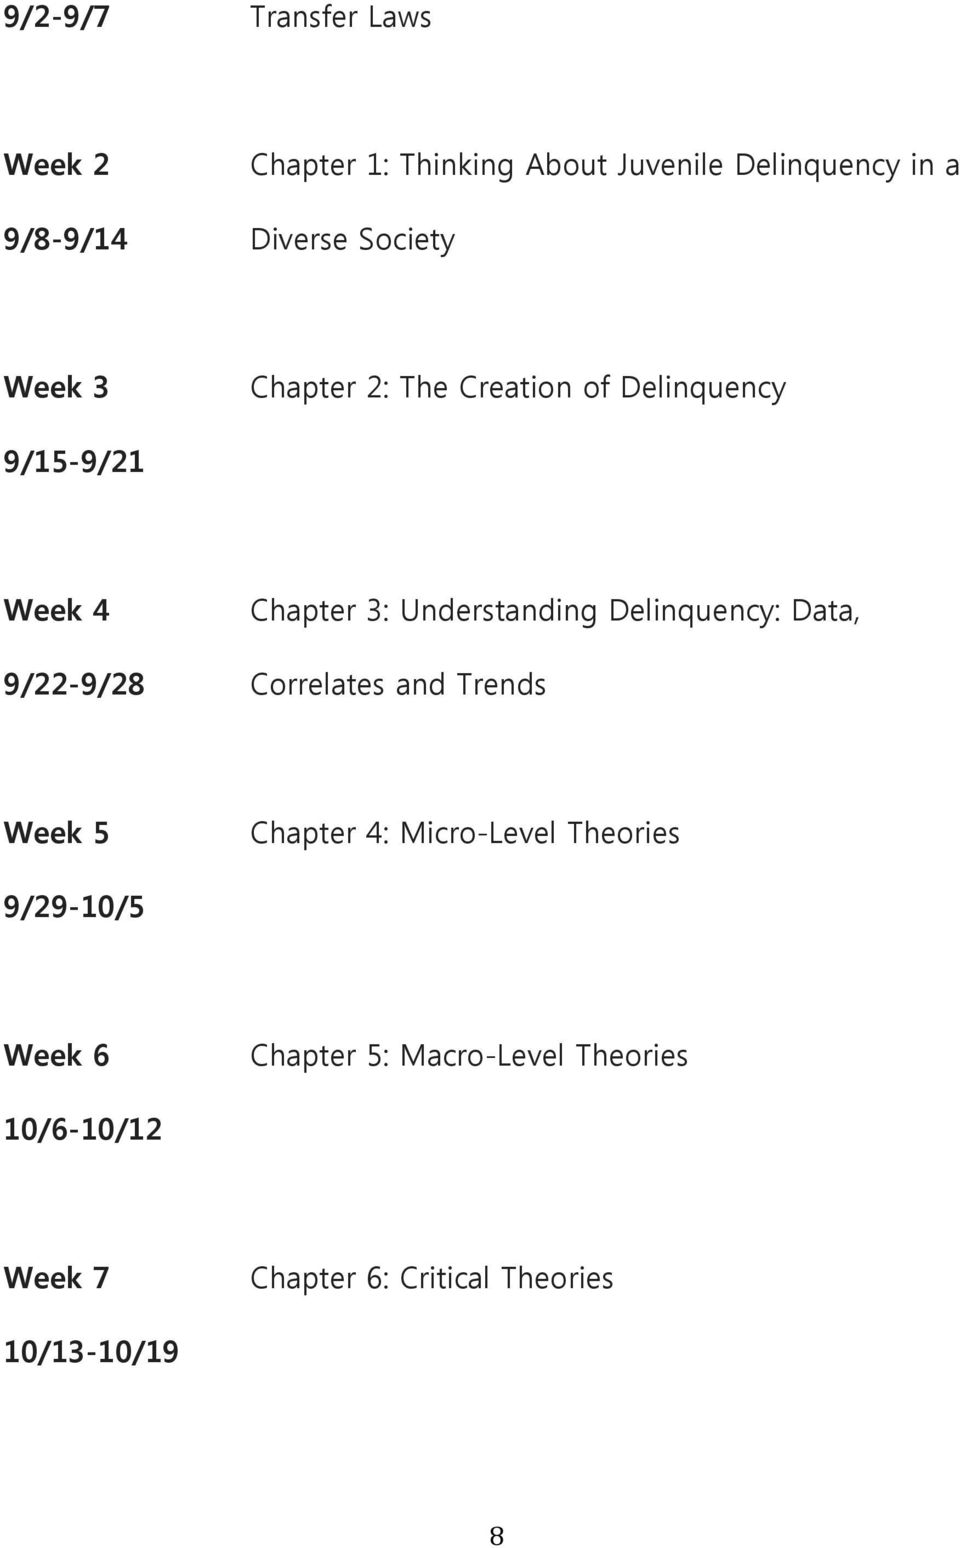 Delinquency: Data, 9/22-9/28 Correlates and Trends Week 5 Chapter 4: Micro-Level Theories